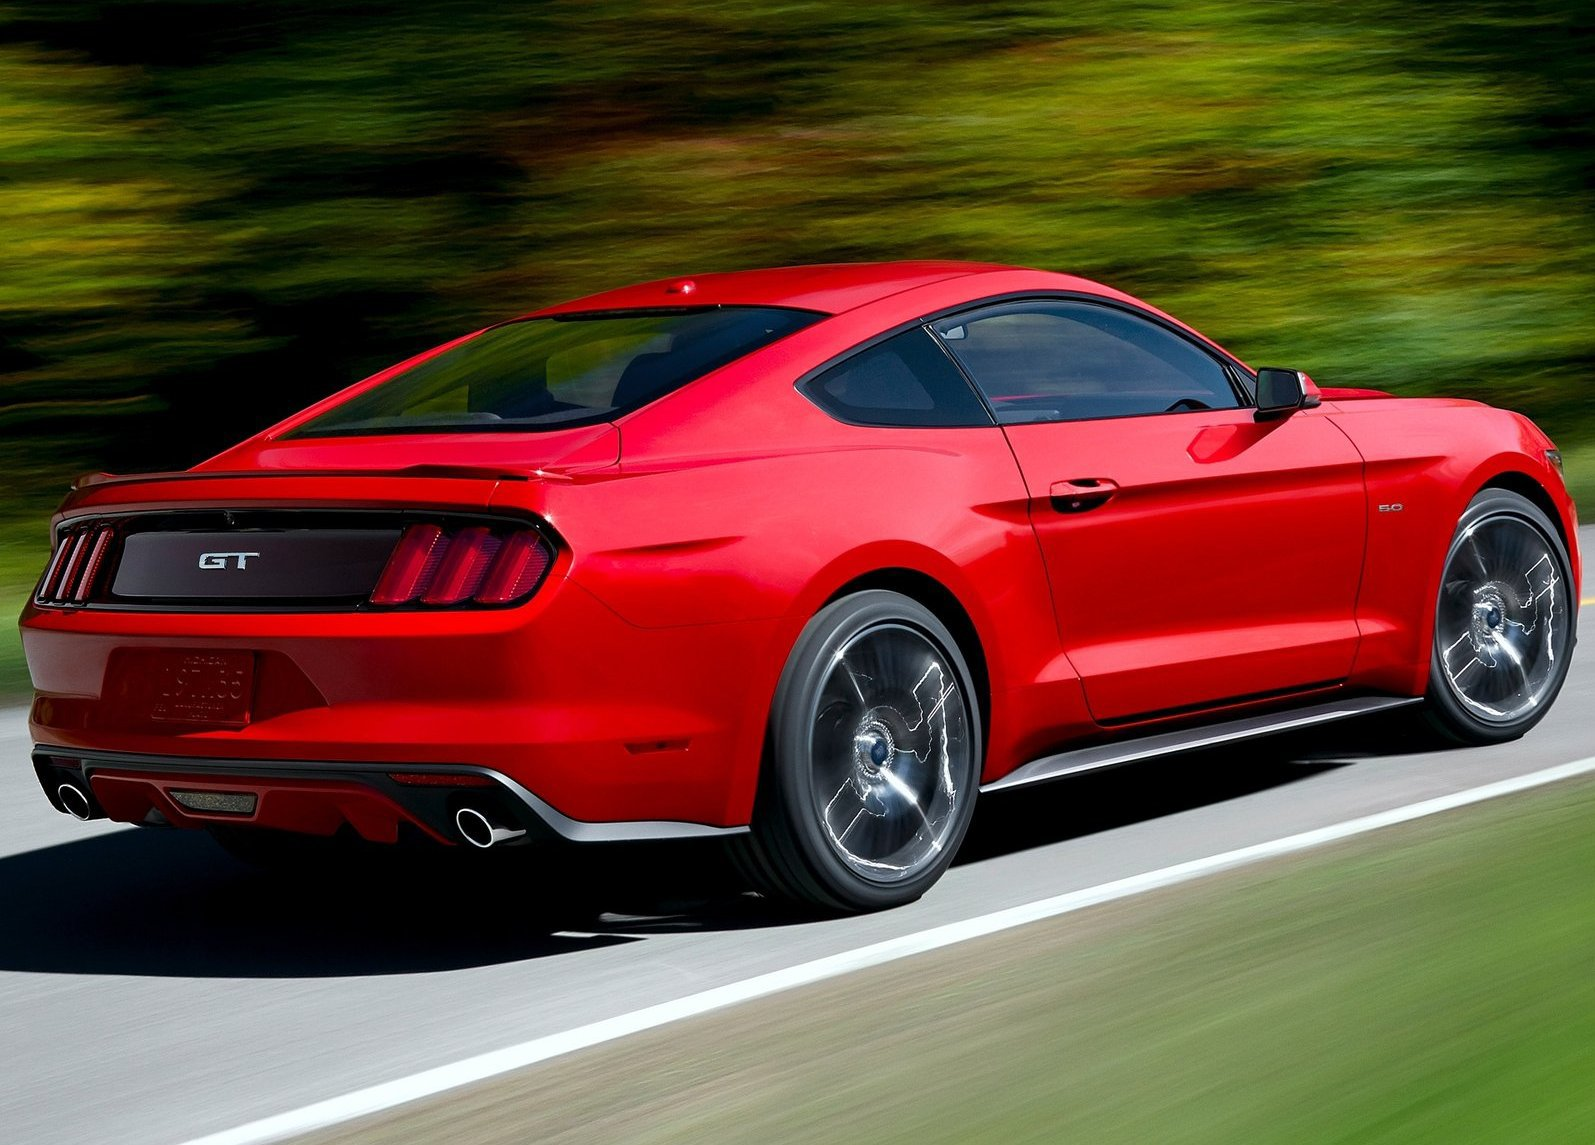 Ford-Mustang_GT_2015_1600x1200_wallpaper_12.jpg